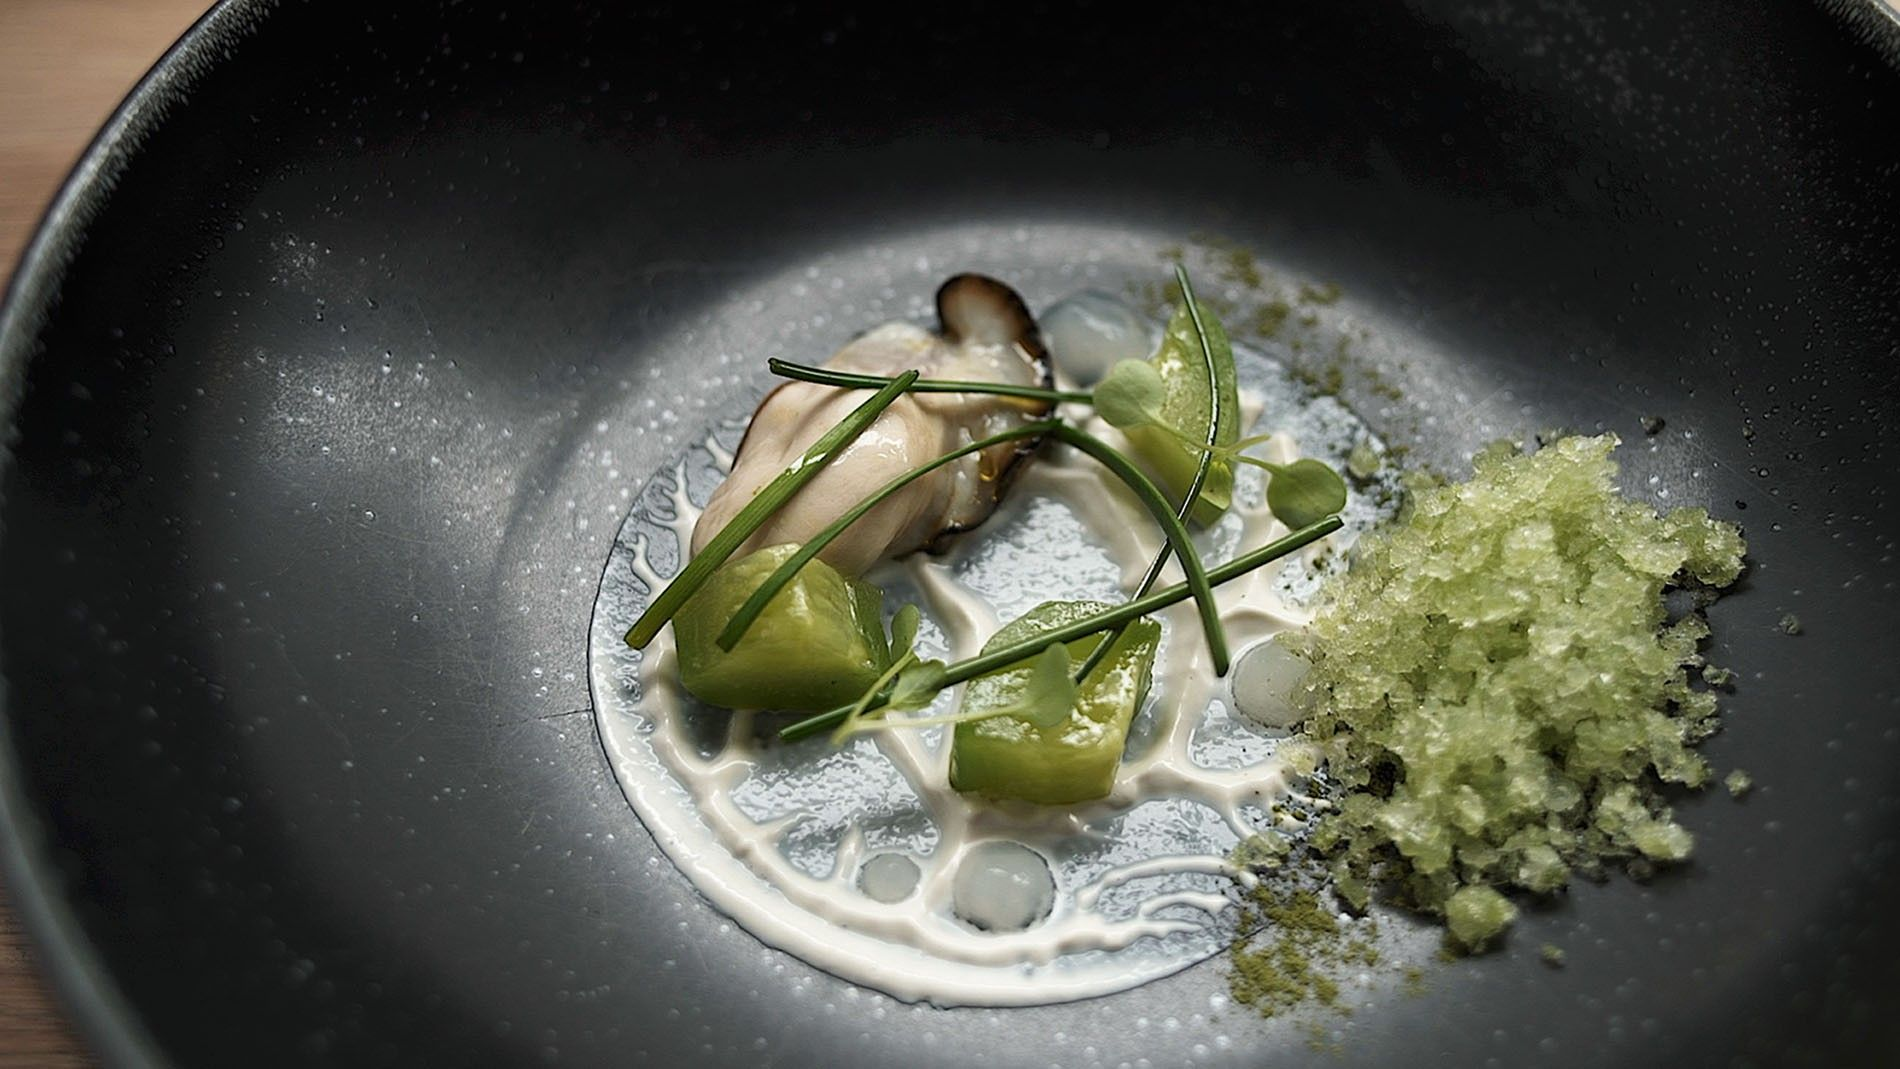 Dish of oyster, cucumber and arrow grass at Aniar, a Michelin-starred restaurant in Galway.